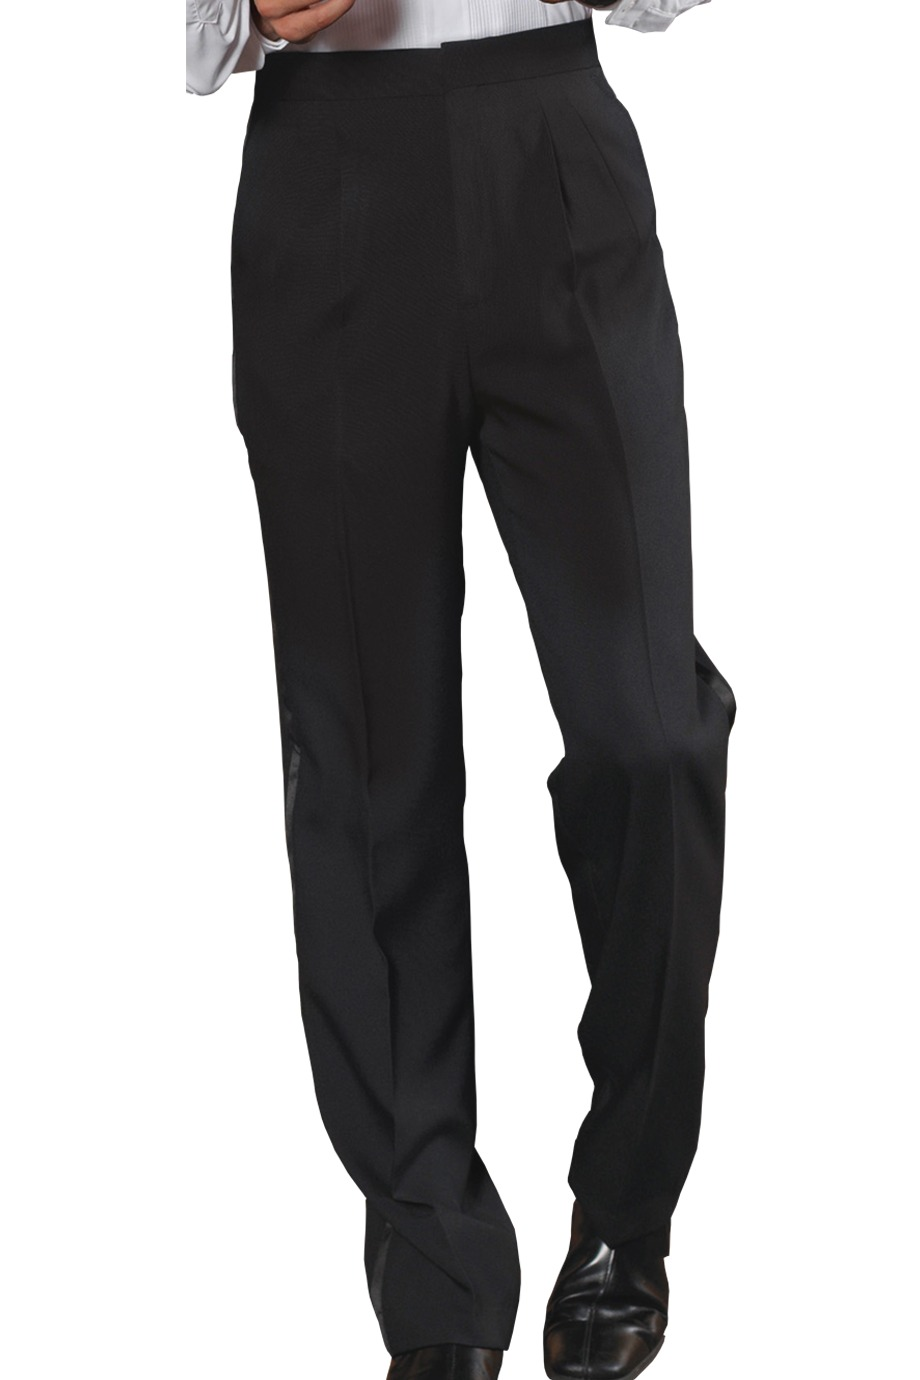 Edwards Garment 2790 - Men's Tuxedo Pleated Pant